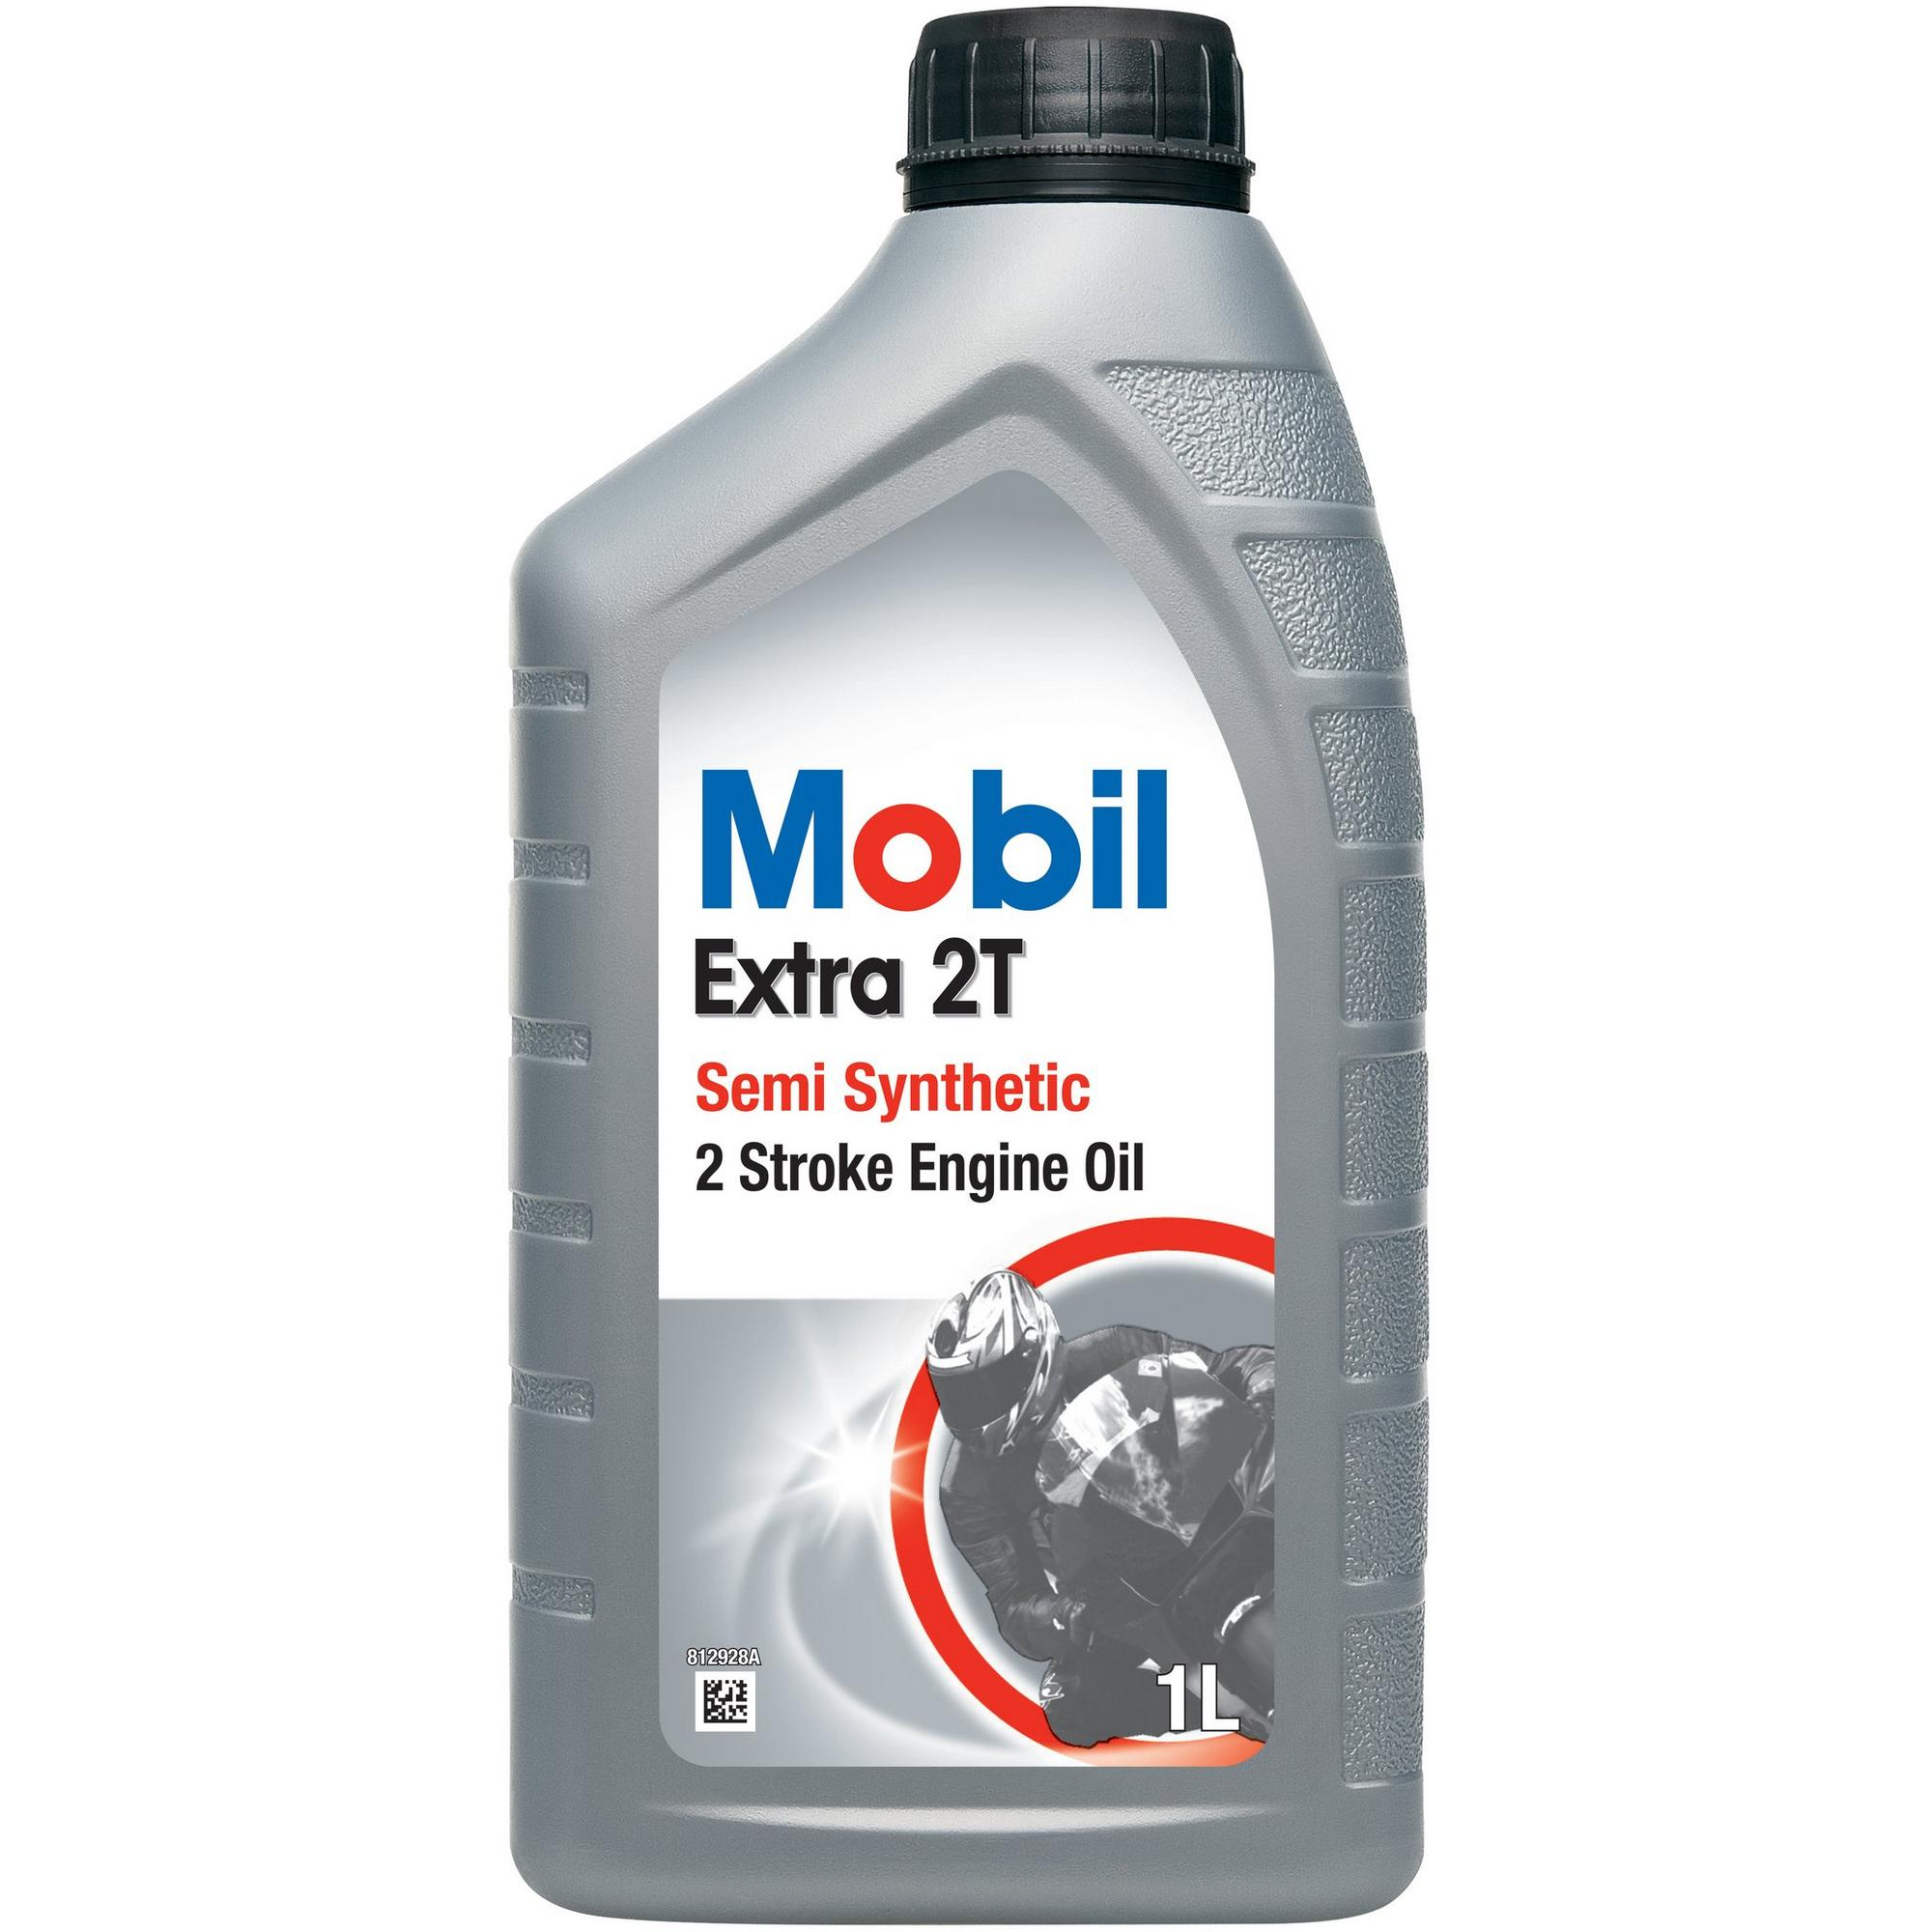 Mobil Extra 2T 2 Stroke Semi Synthetic Motorcycle Chain ...